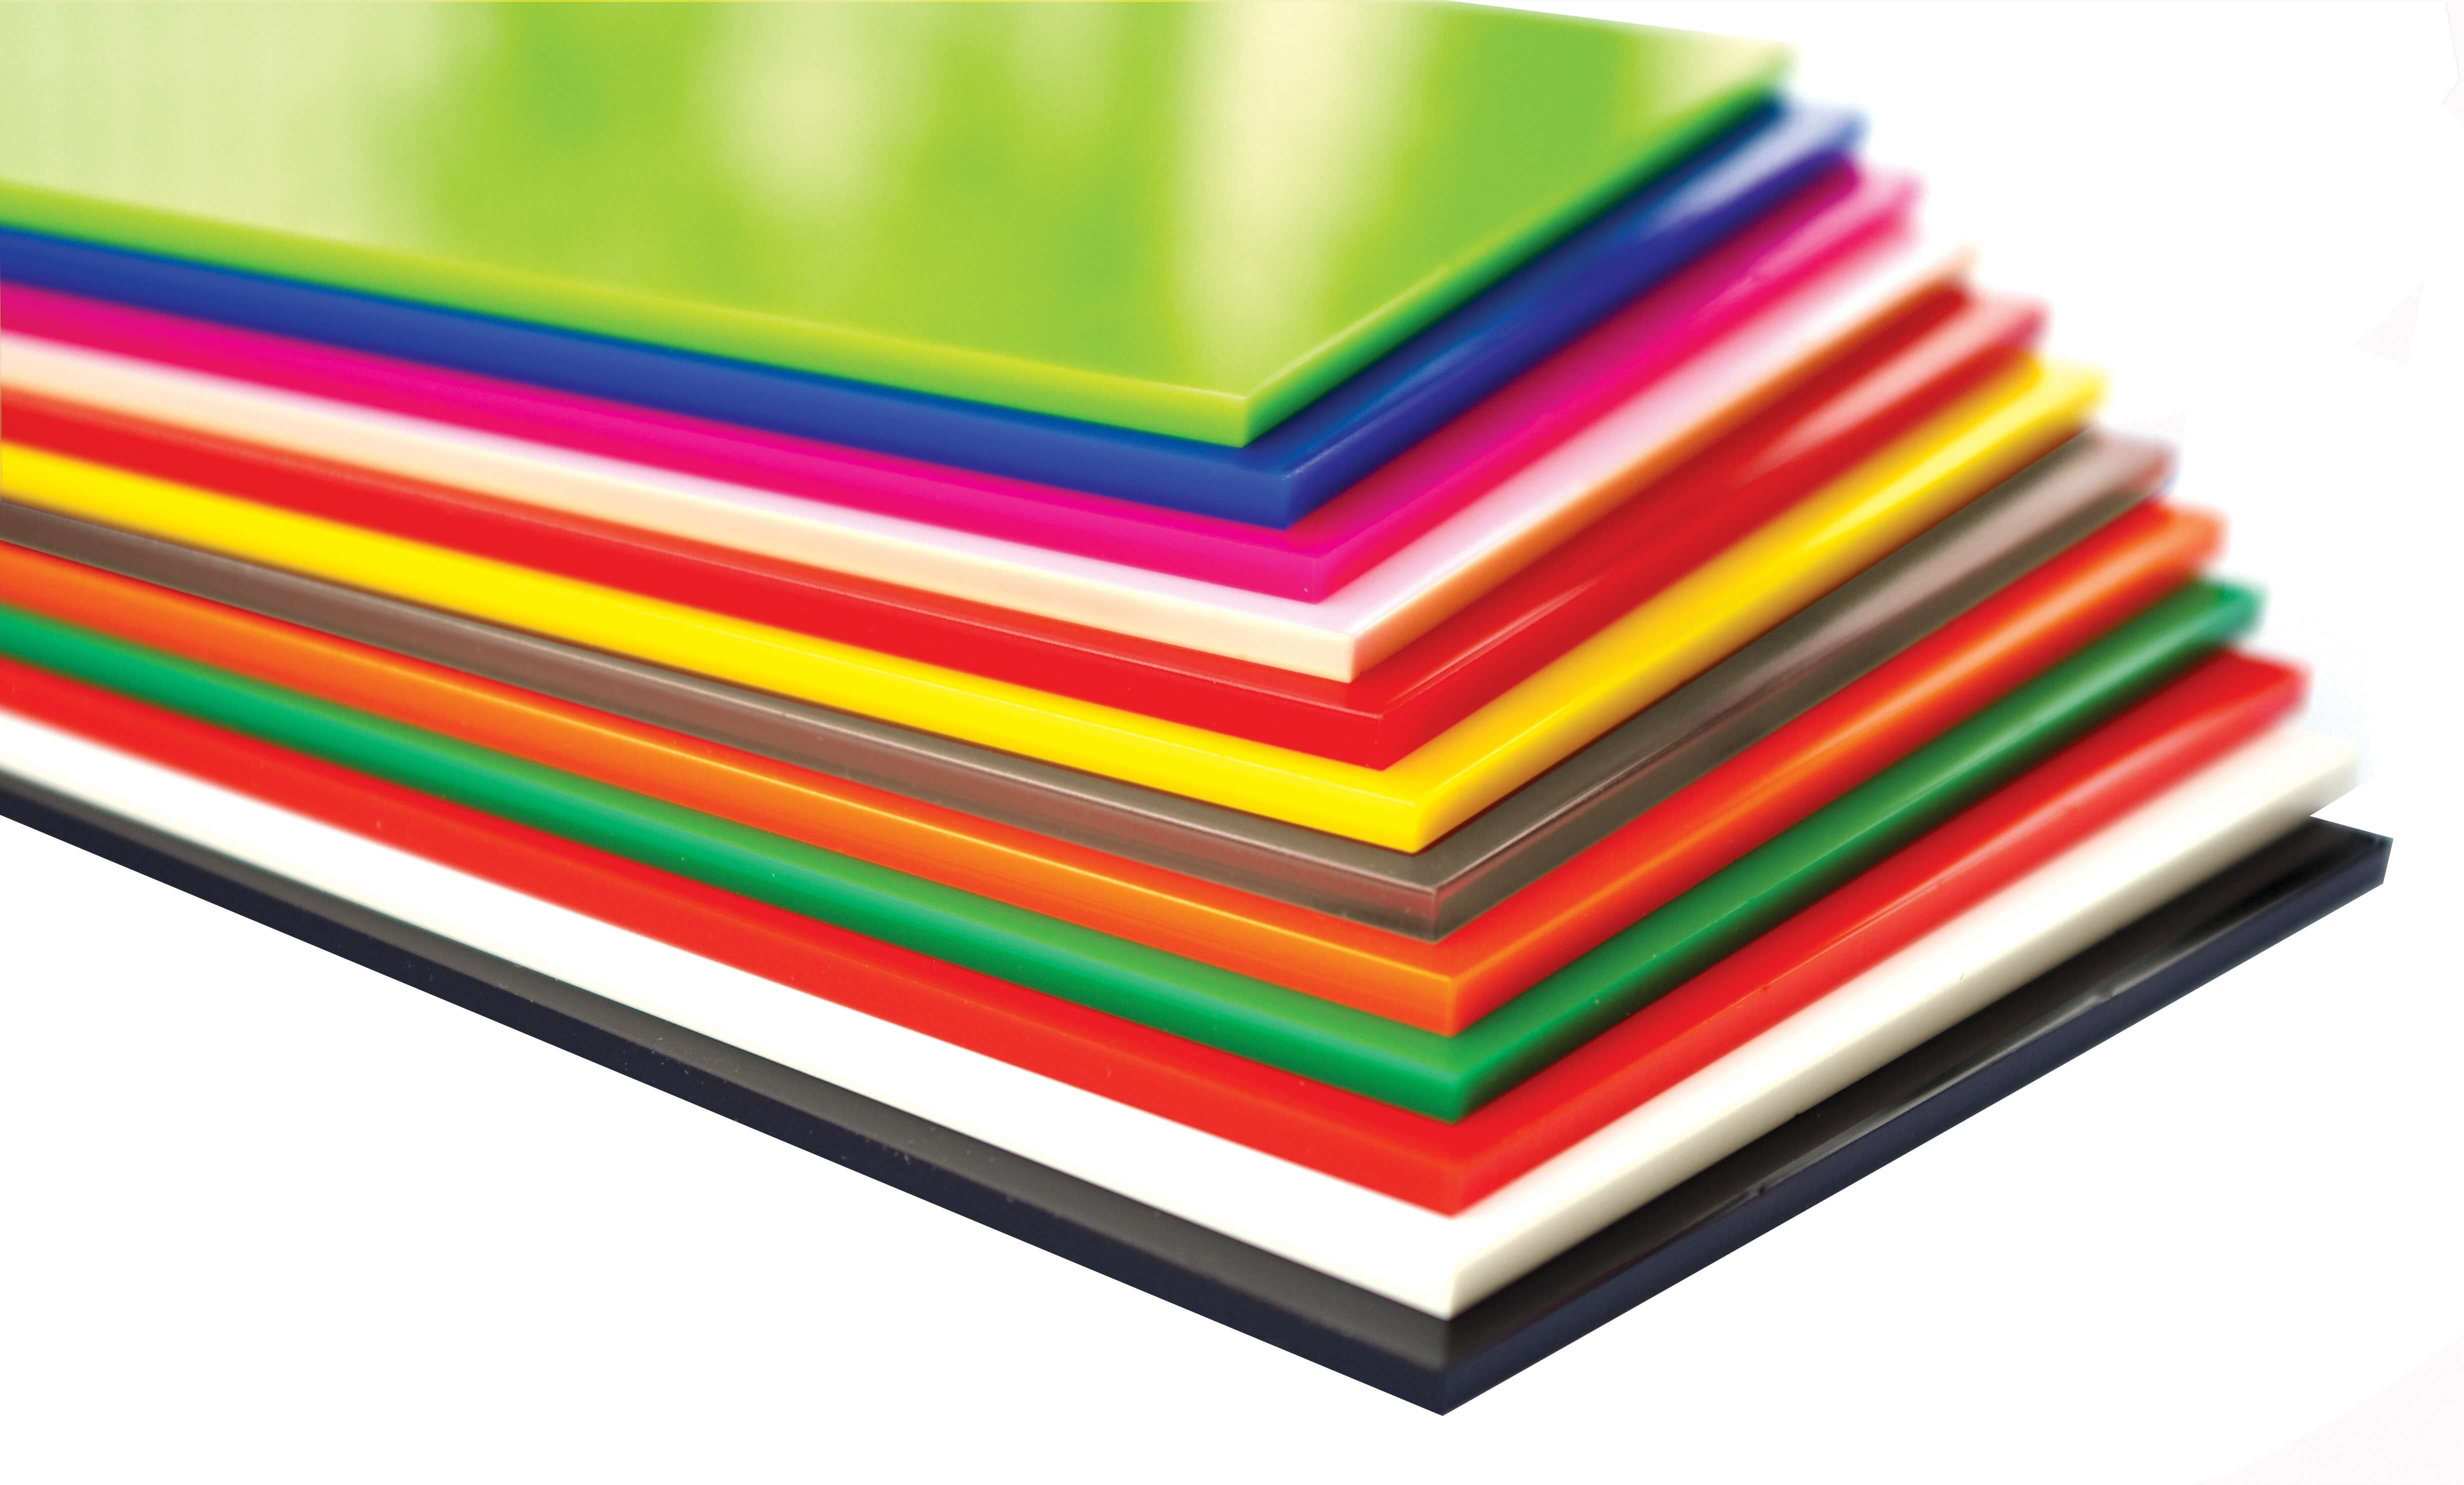 Cast Acrylic 3mm Sheet - 600 x 400mm Assorted Pack of 12 ...